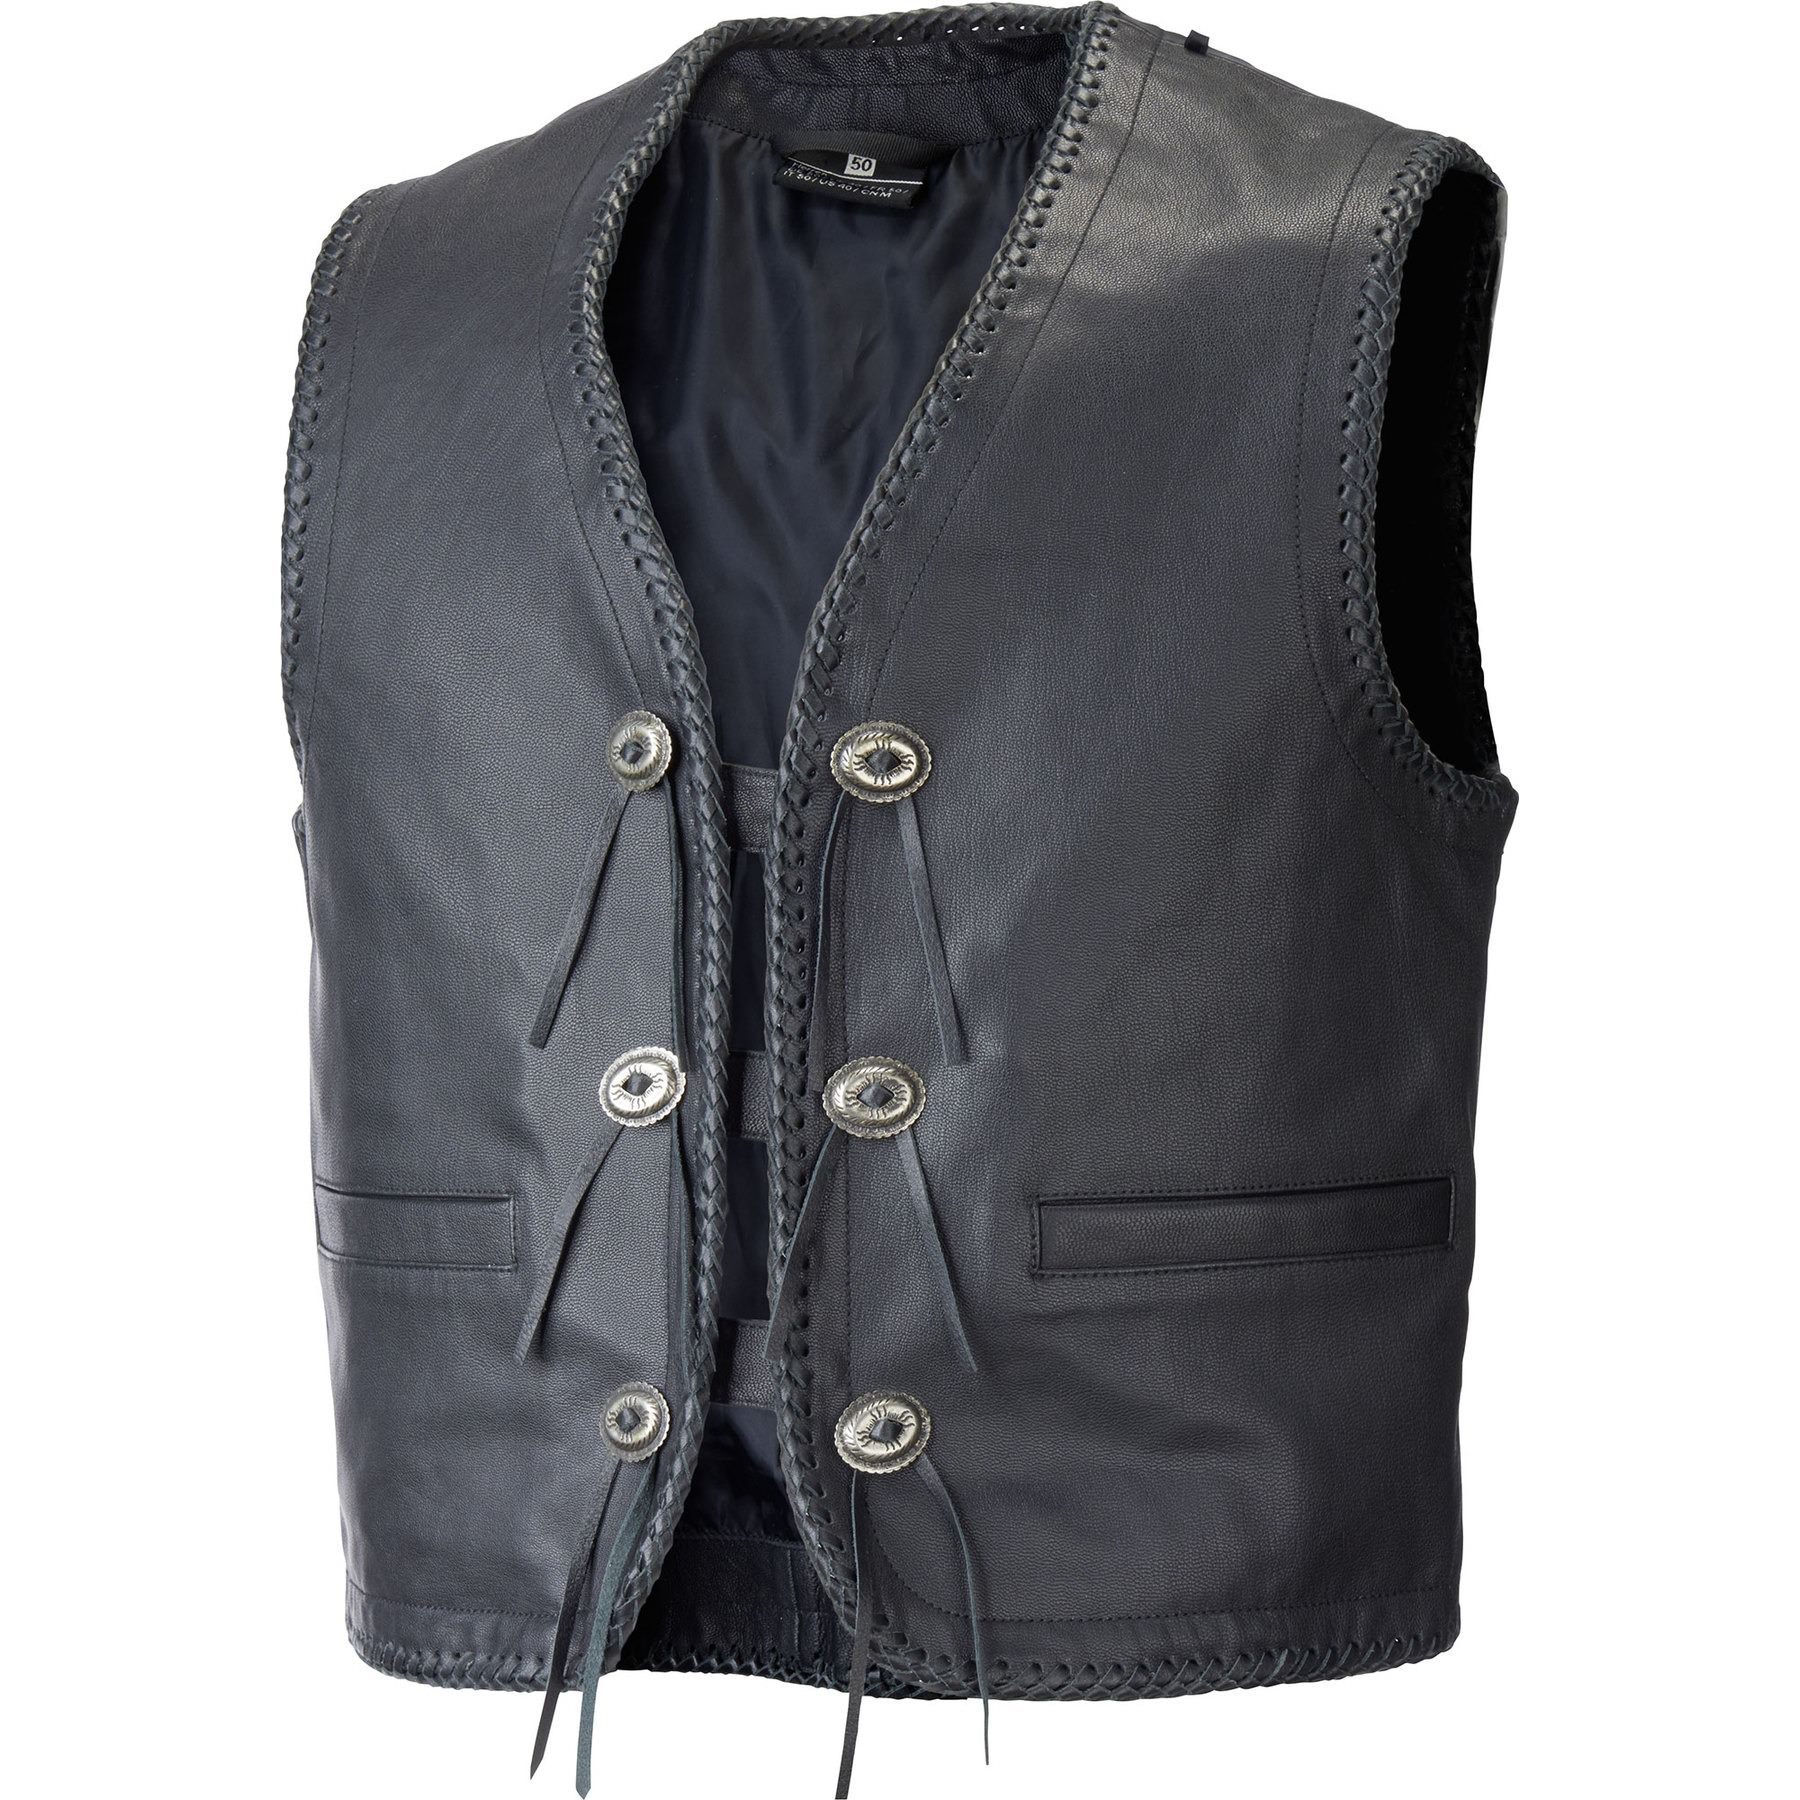 Leather Motorcycle Button Vest Motorbike Biker Rider Braided Touring Cruser Vest